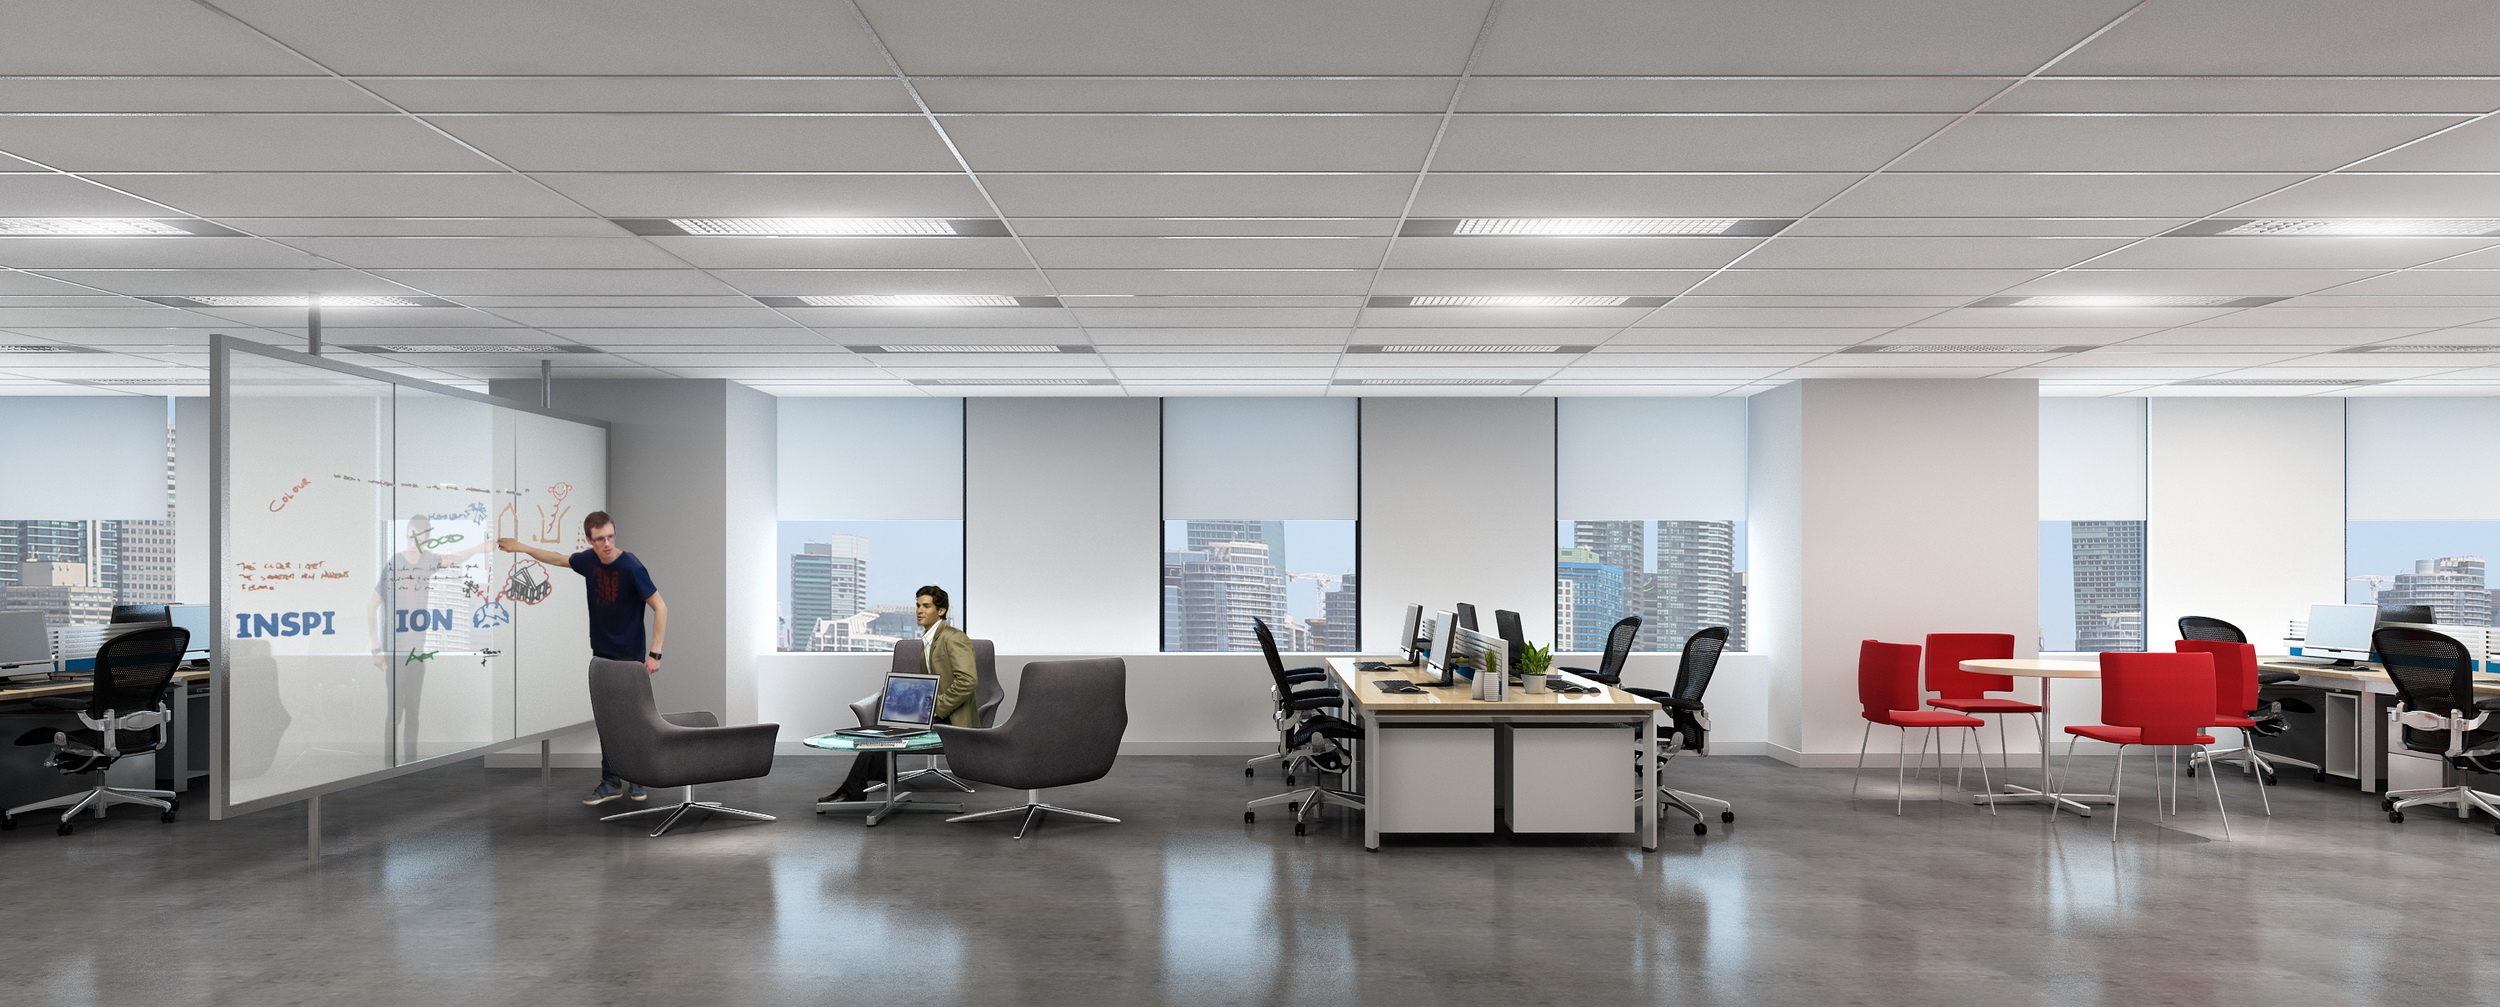 I10-BBDO Office  3D Rendering